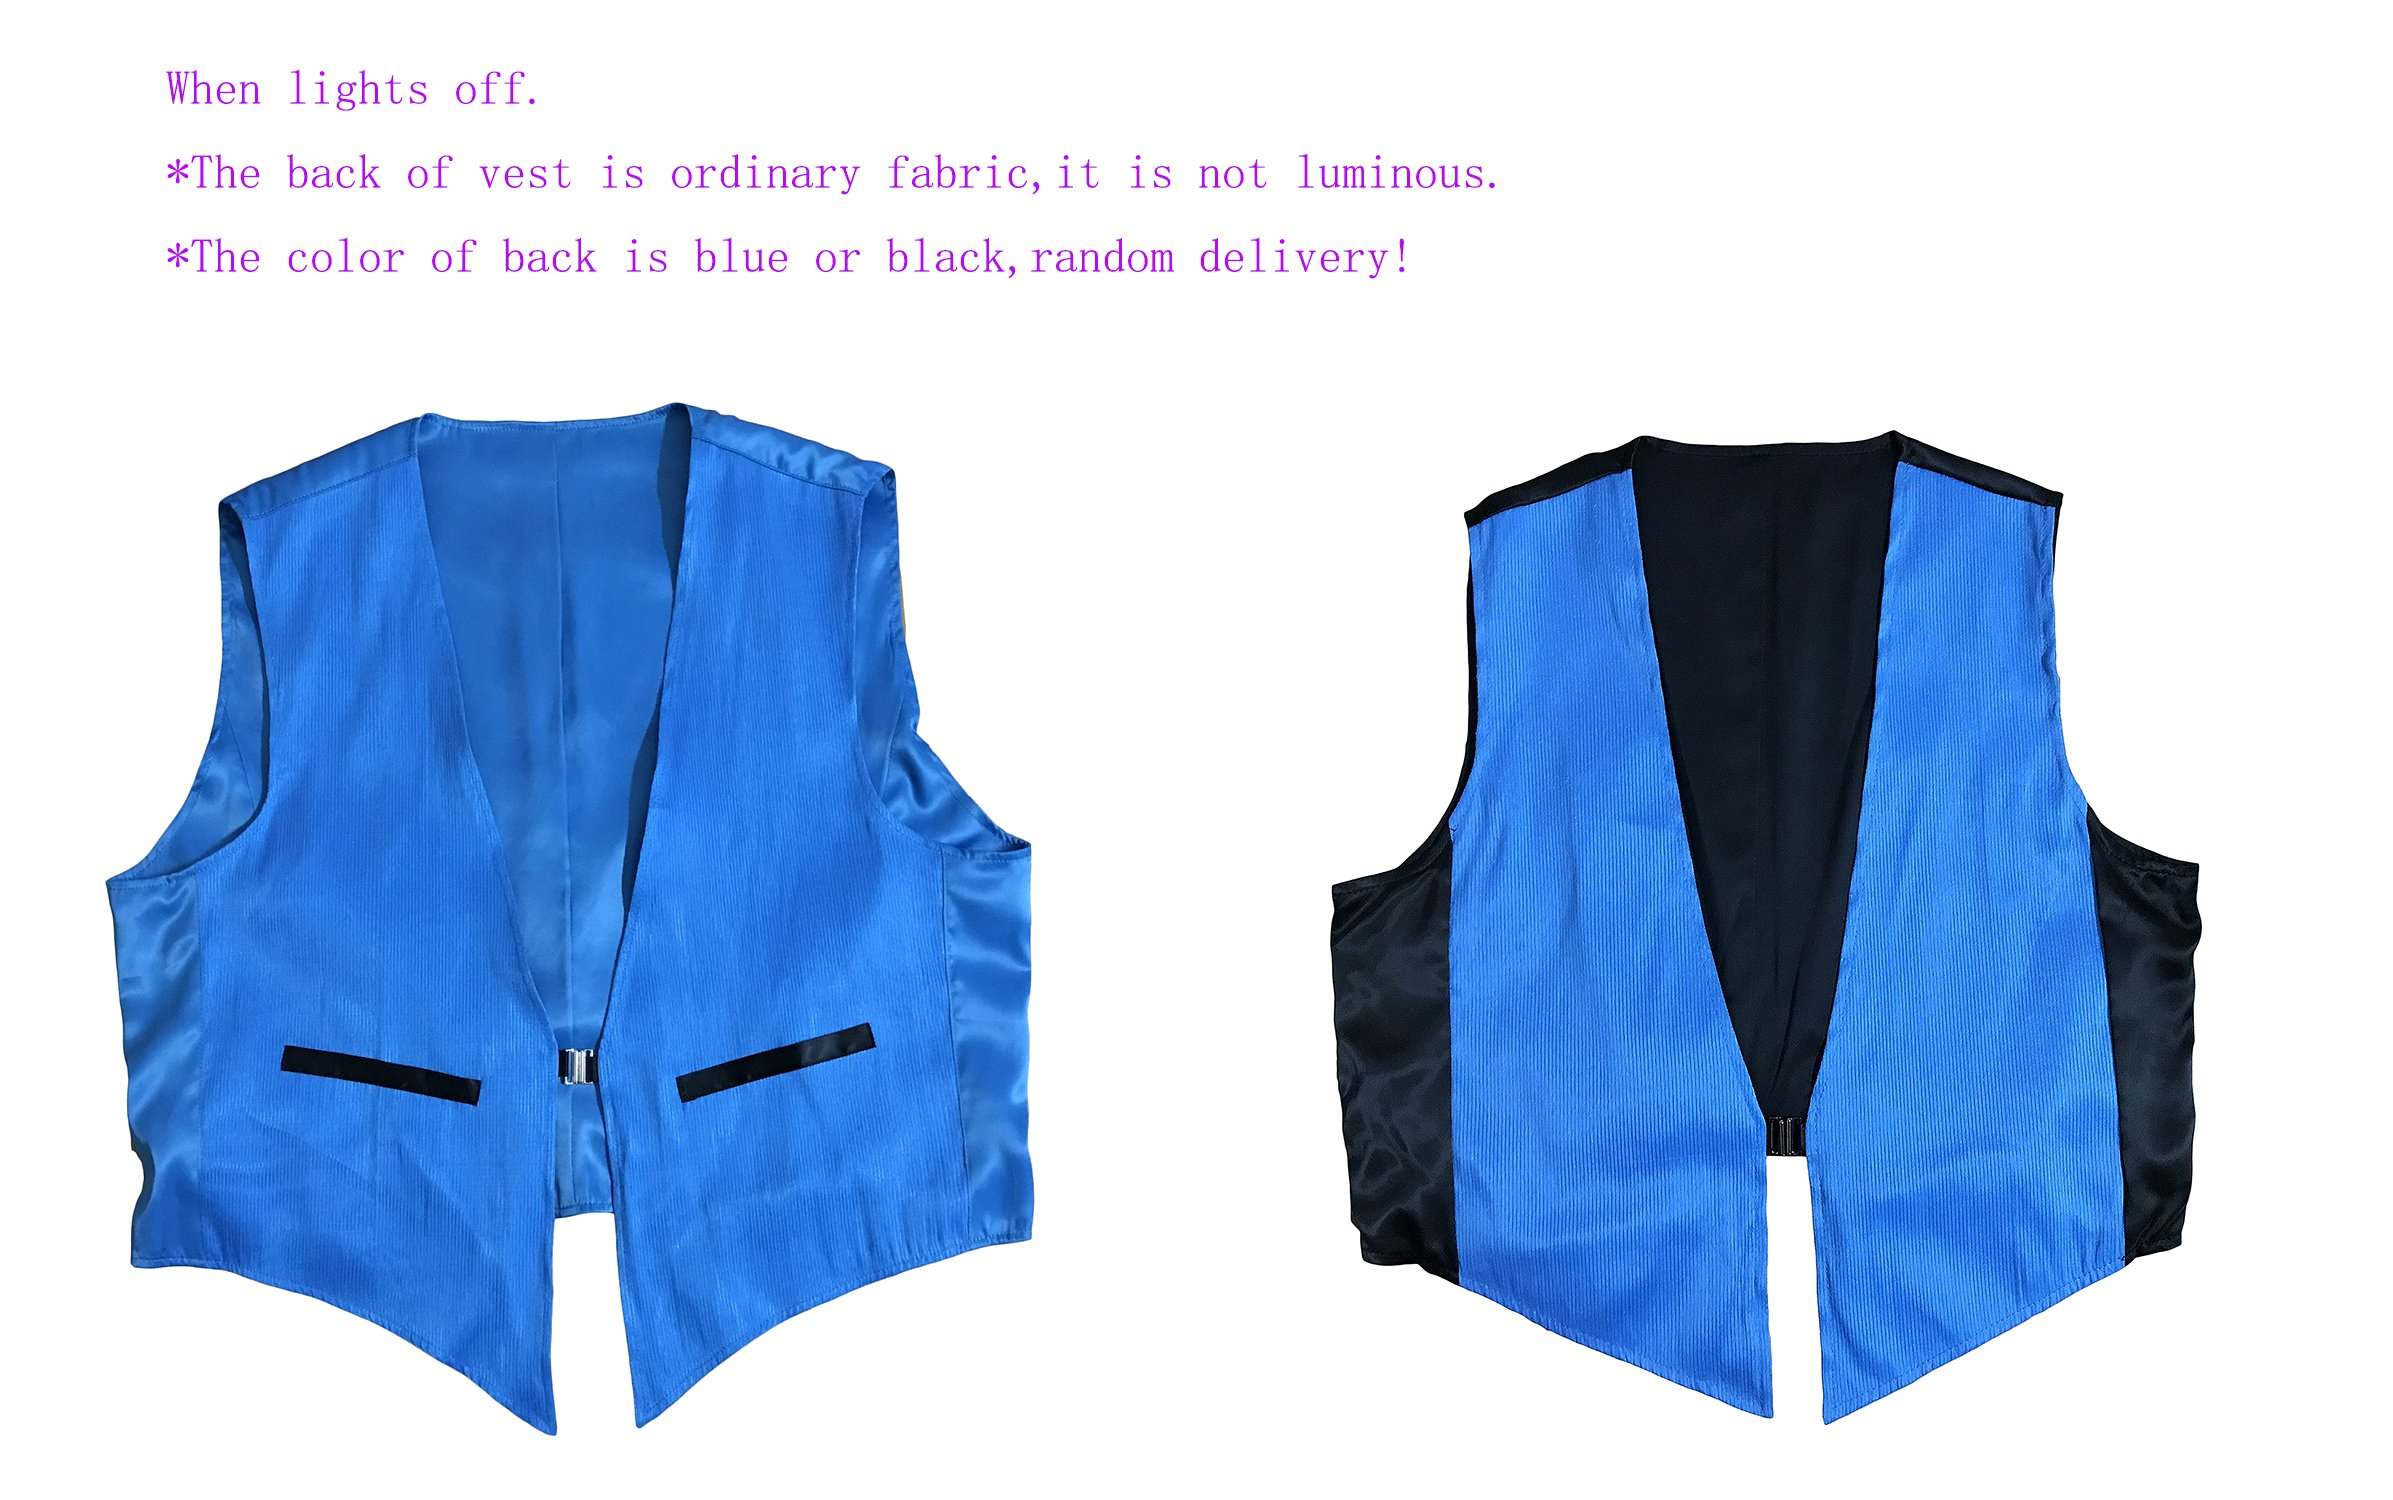 LED Fiber Optic Waistcoat Light up Vest for Men Fashion Glow in The Dark Luminous Vest (XL, Blue) by Fiber Optic Fabric Clothing (Image #6)